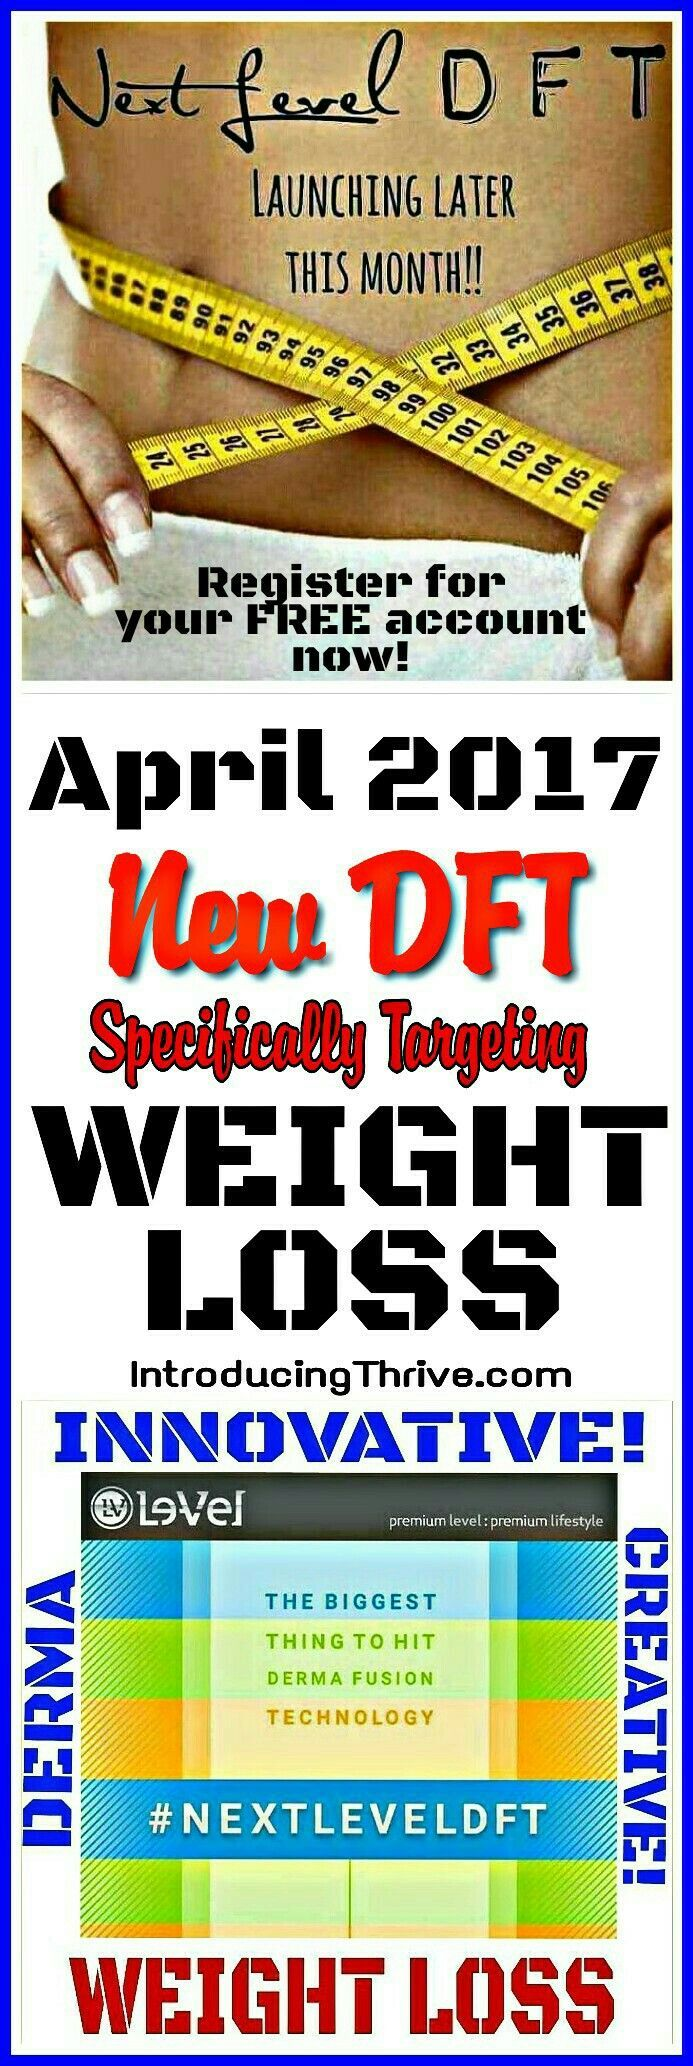 NEW! Weight Loss Vitamin DFT diet patch set to be released April 2017! Are you ready to jump start your diet goals? Register for your Free Le-Vel account today, be the first to get these amazing new weight loss diet patches!